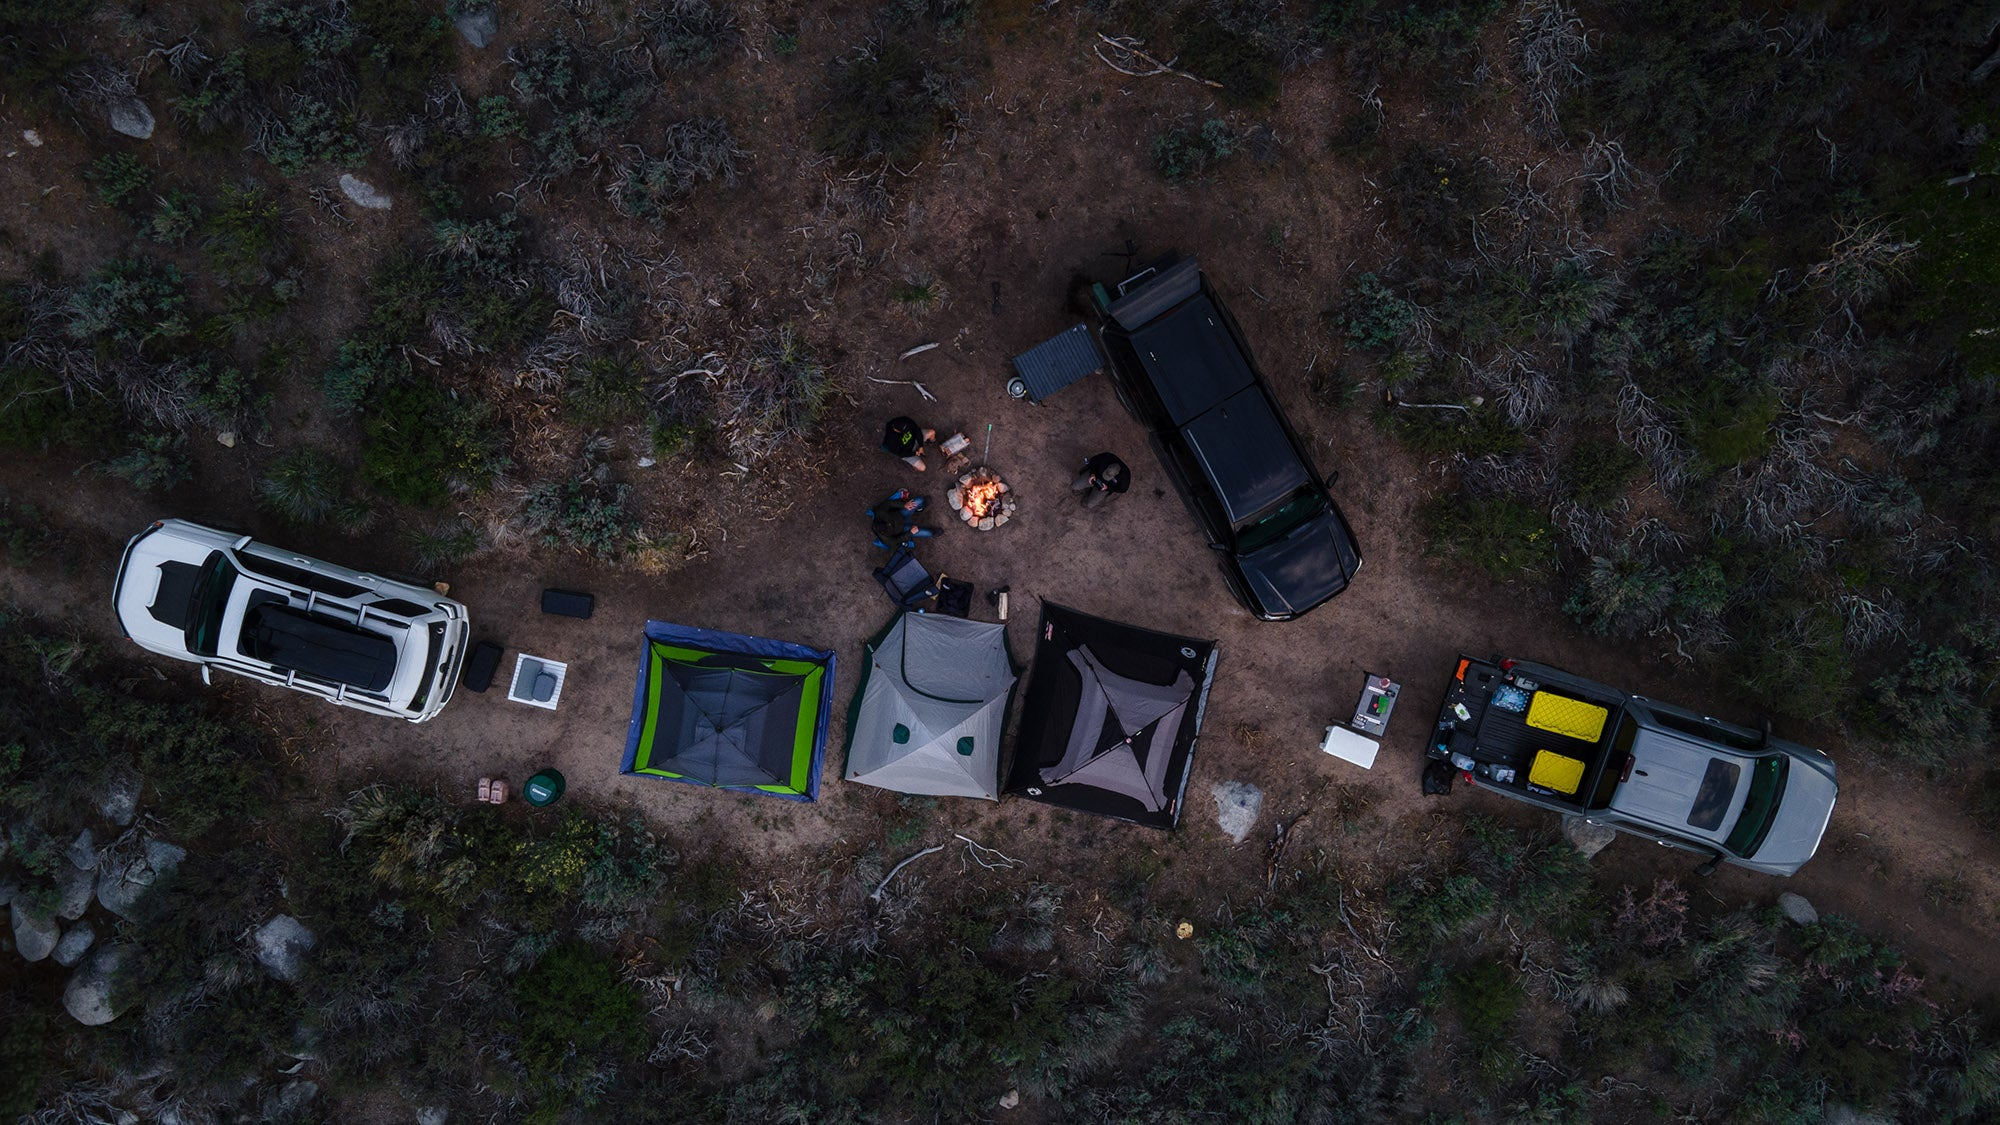 Drone image of our campsite from above